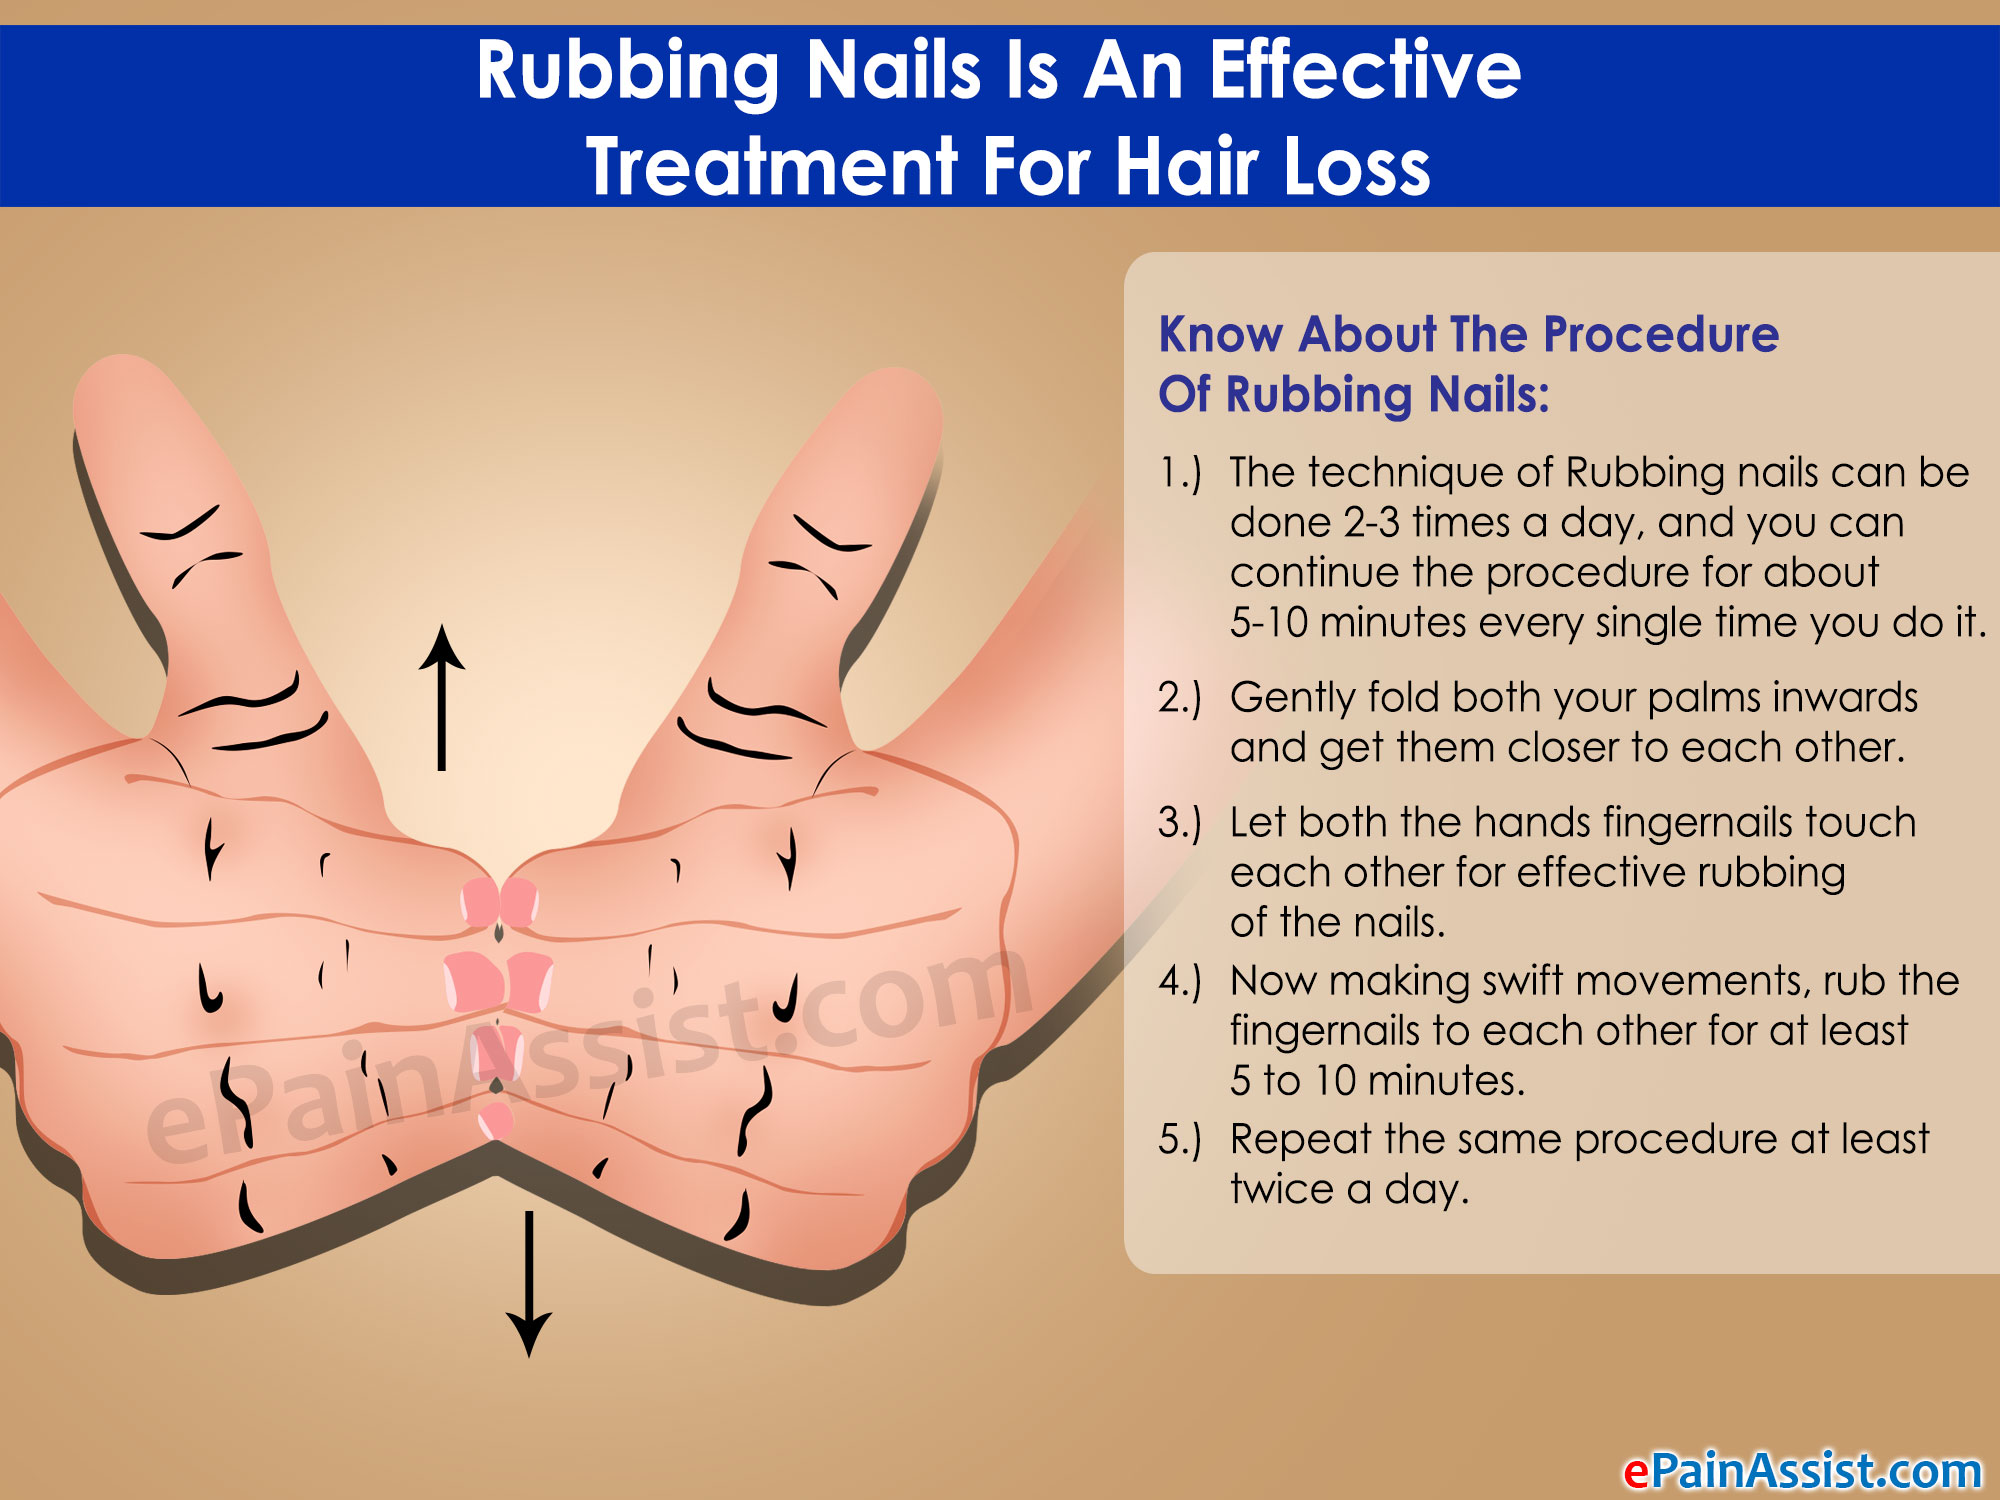 Rubbing Nails Is An Effective Treatment For Hair Loss - Infographic